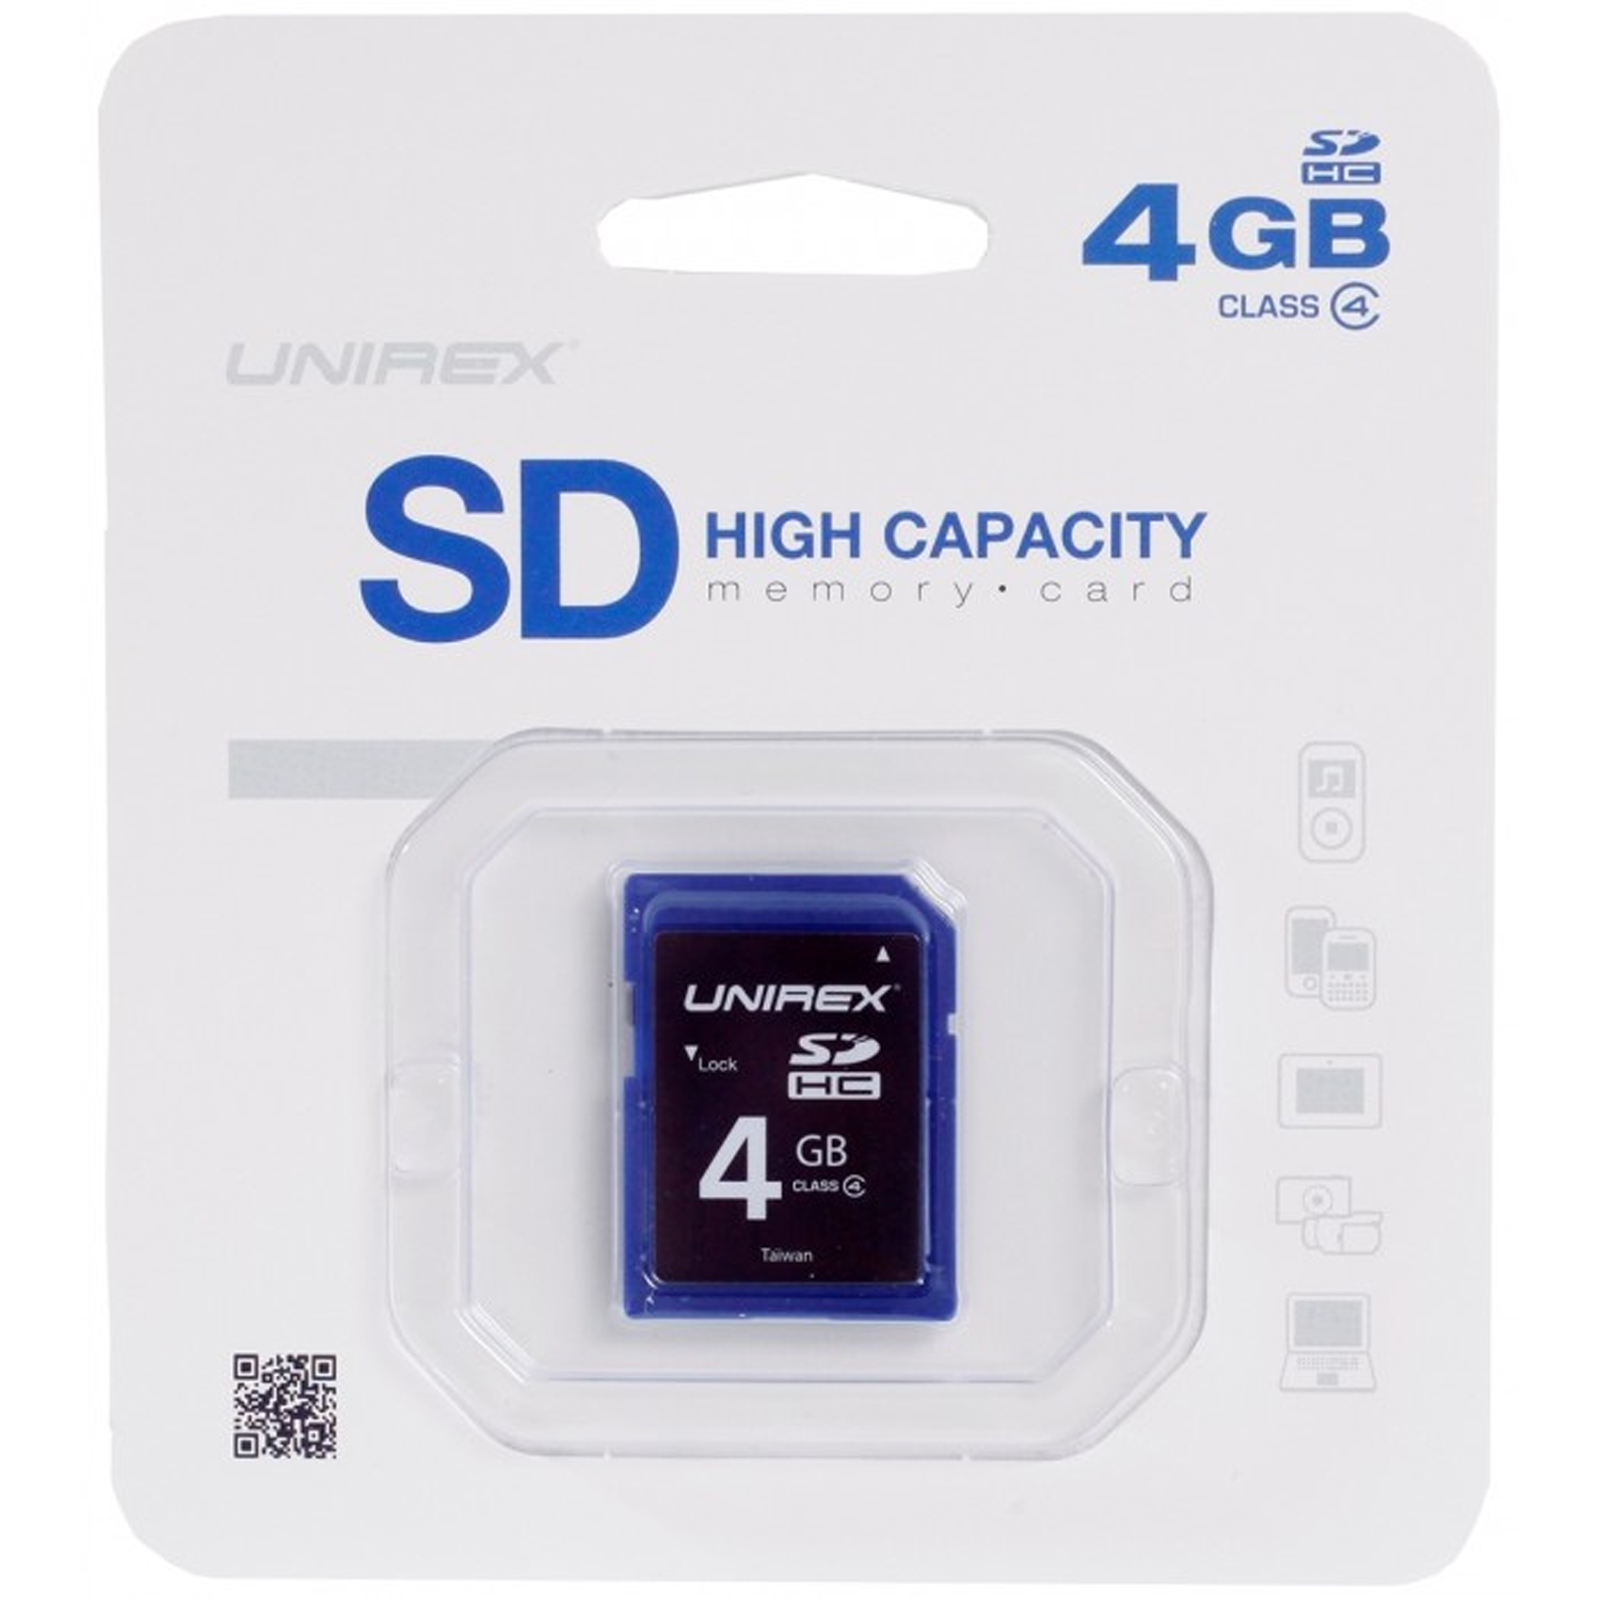 Unirex SD High Capacity Card 4GB Class 4